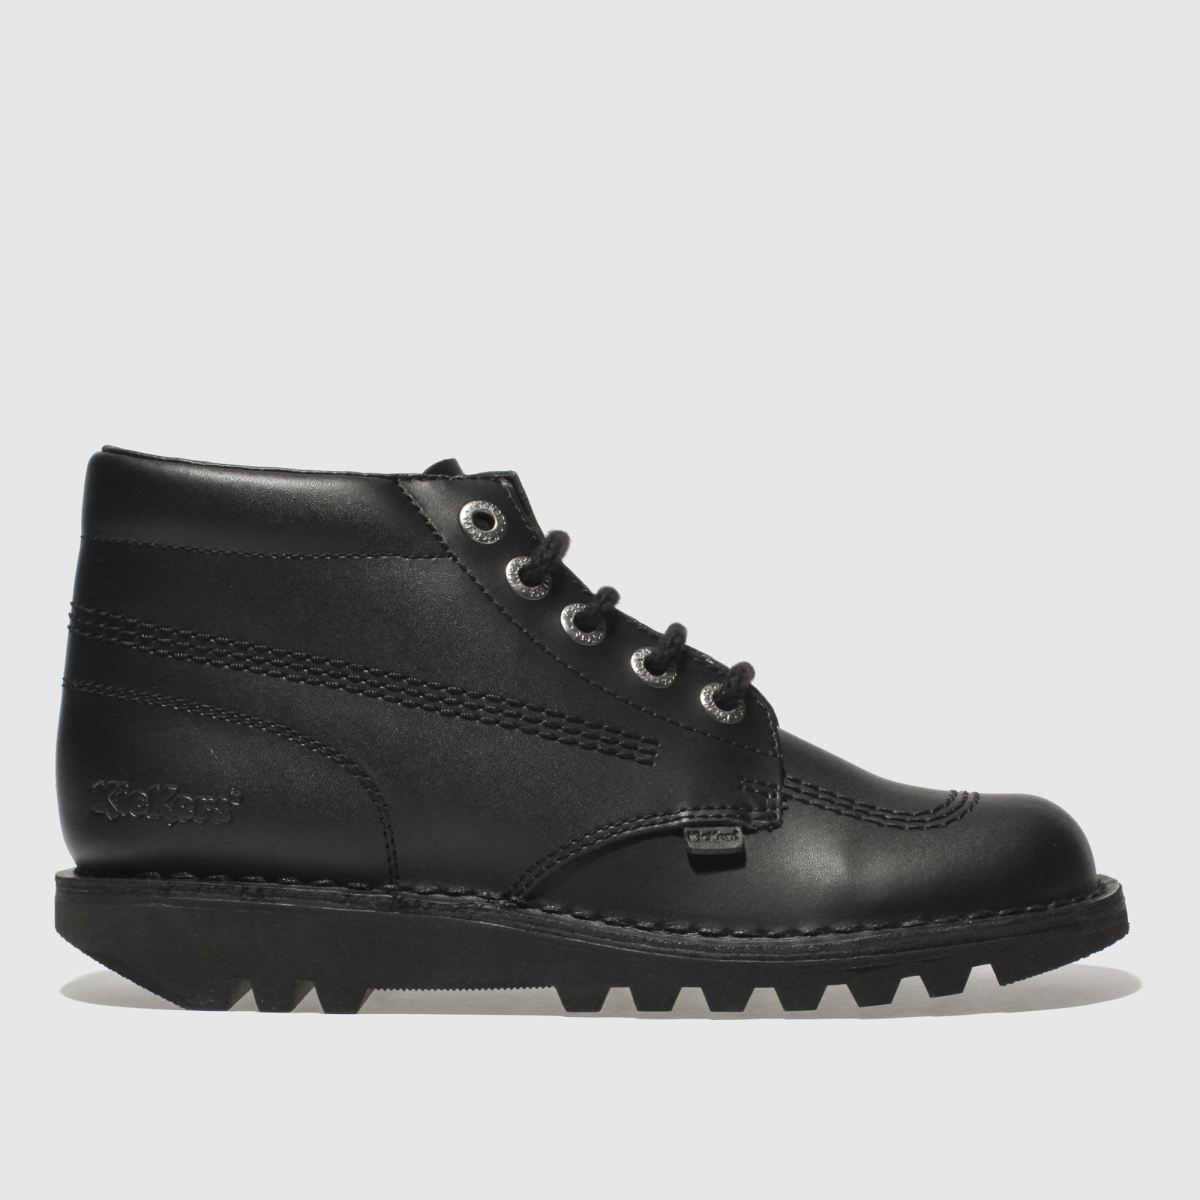 Kickers Black Kick Hi Boots